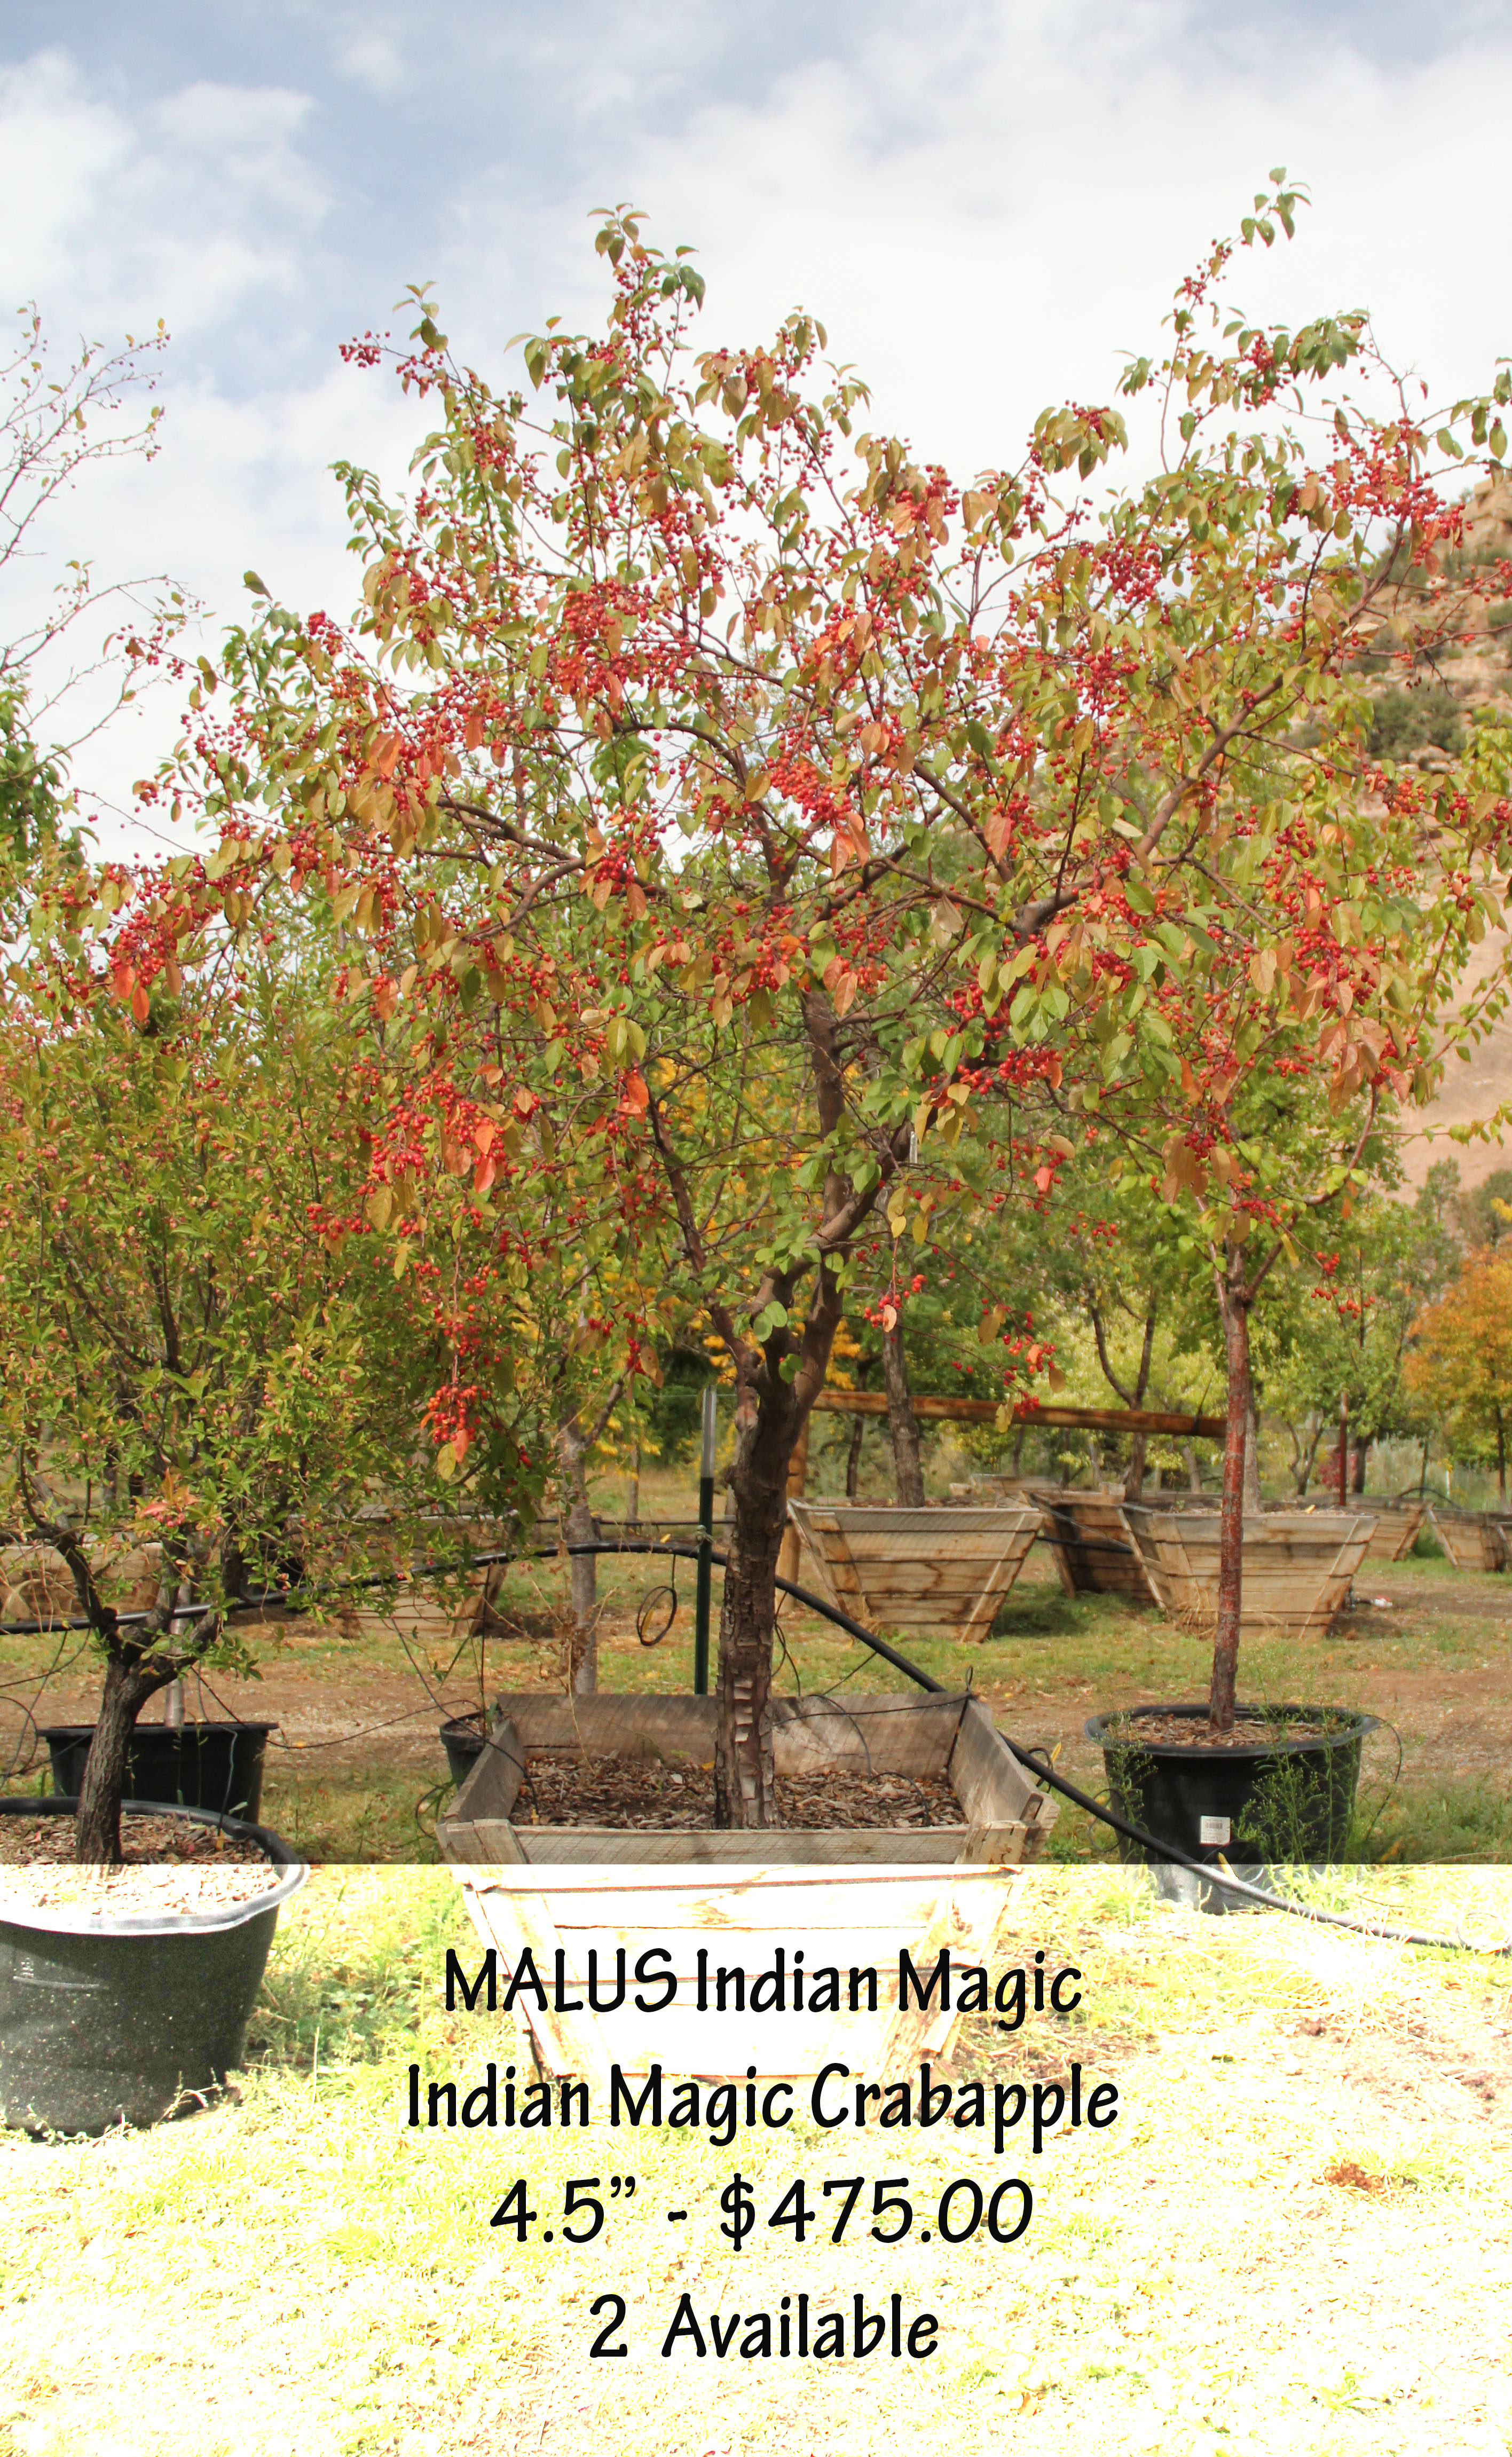 Indian Magic Crabapple